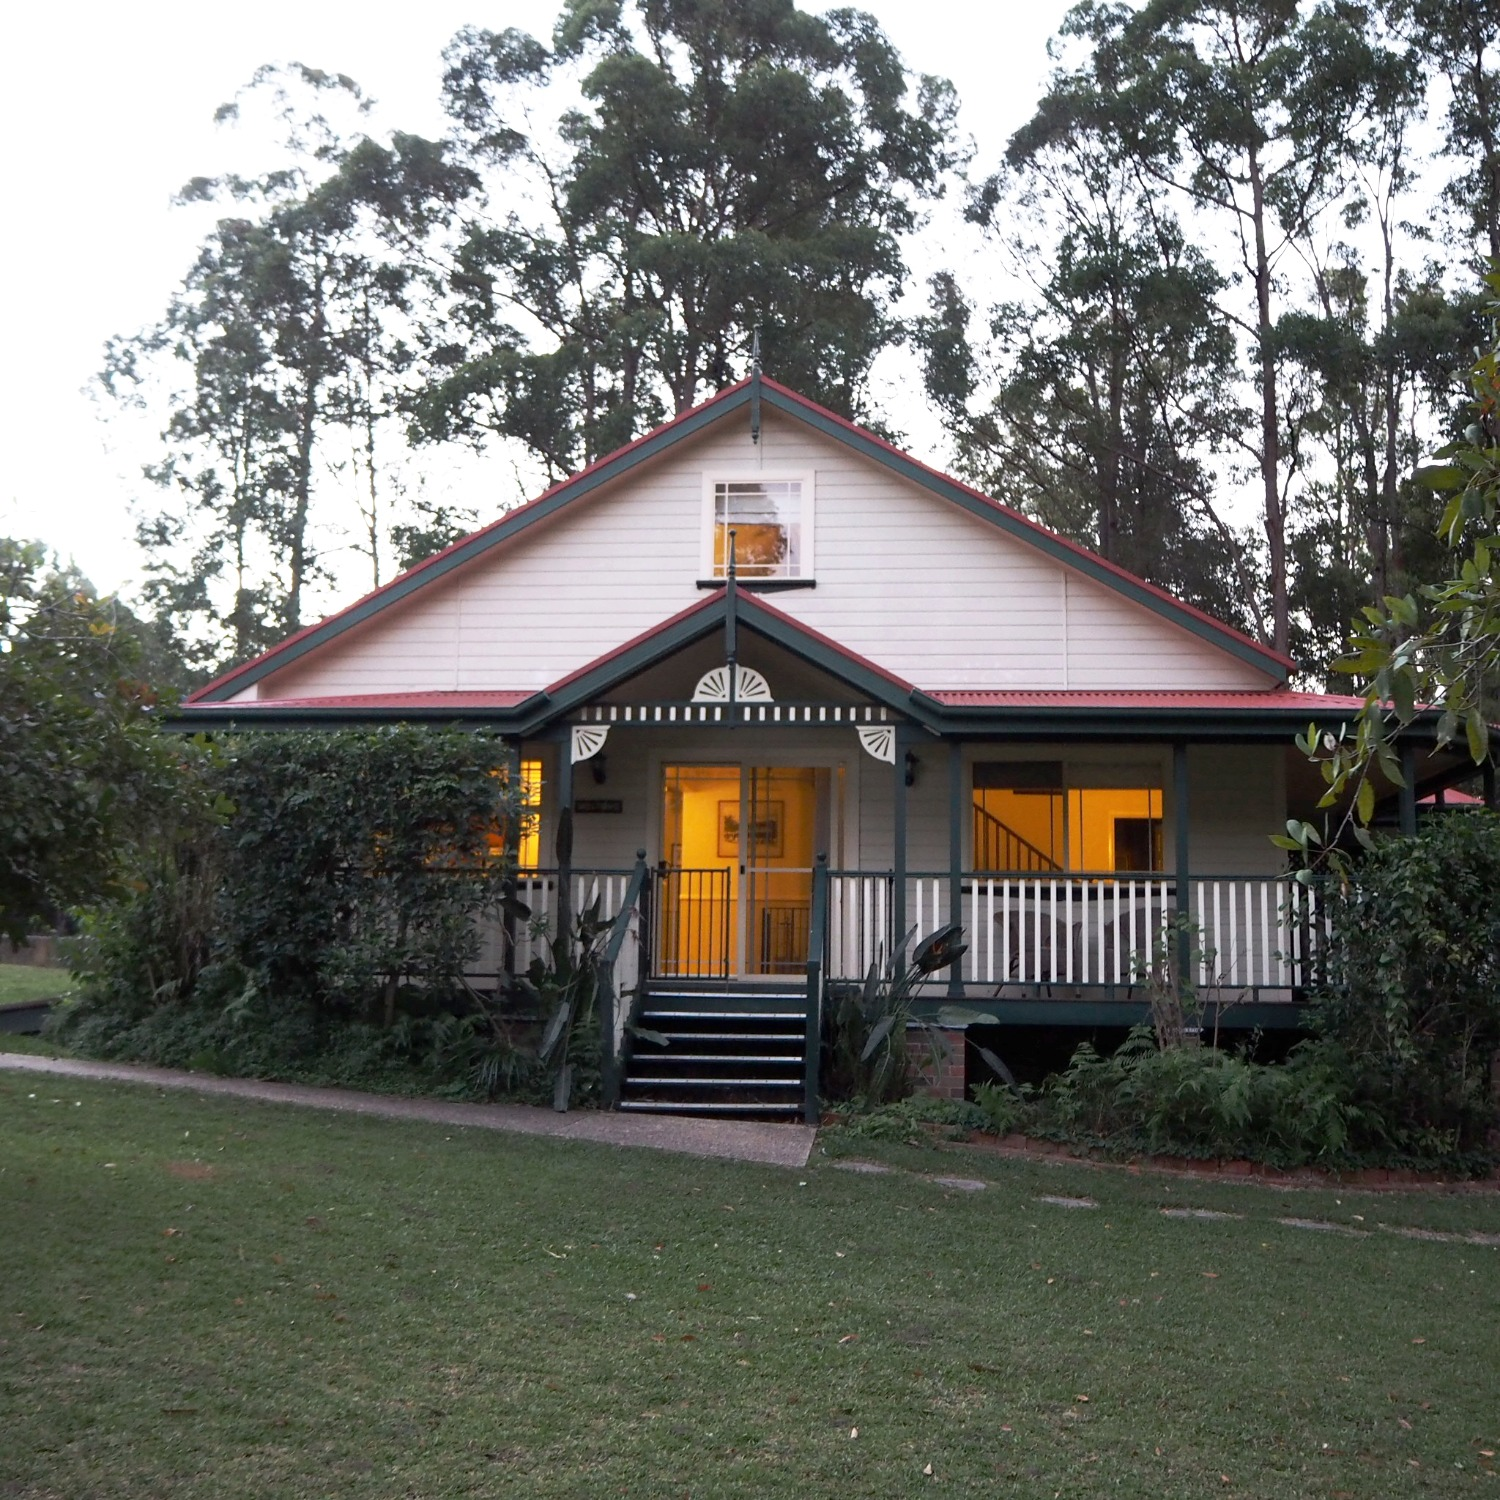 Port Macquarie farm stay accommodation w